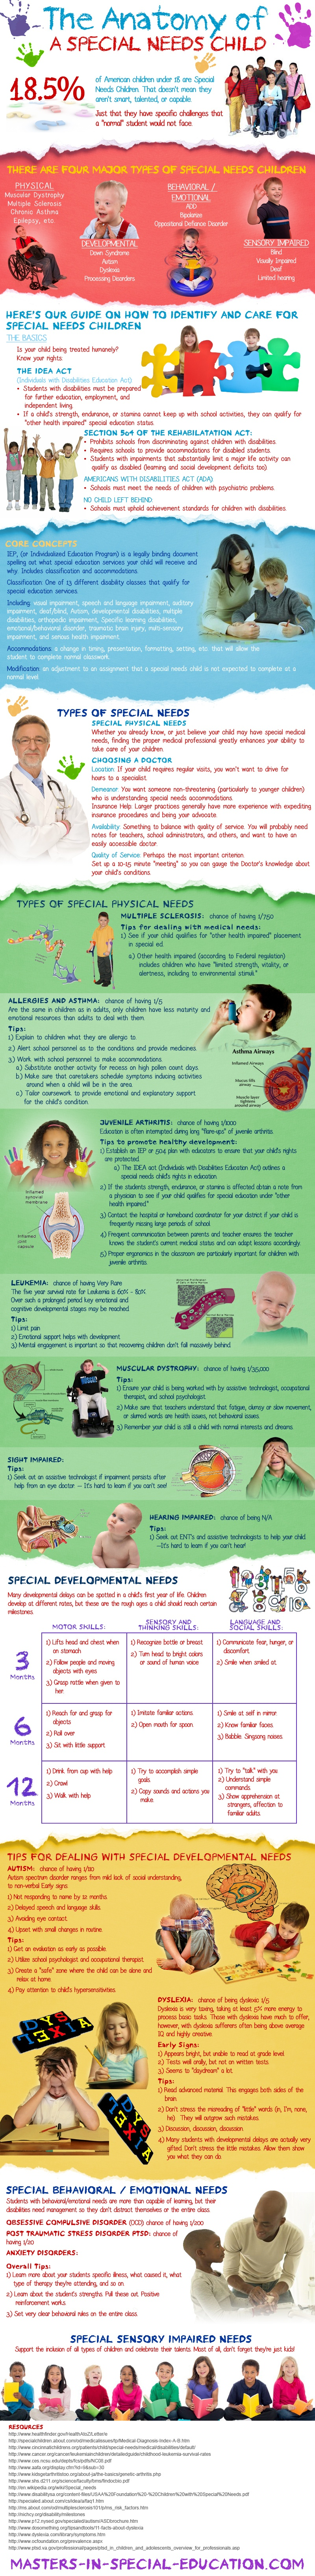 Anatomy of a Special Needs Child Infographic